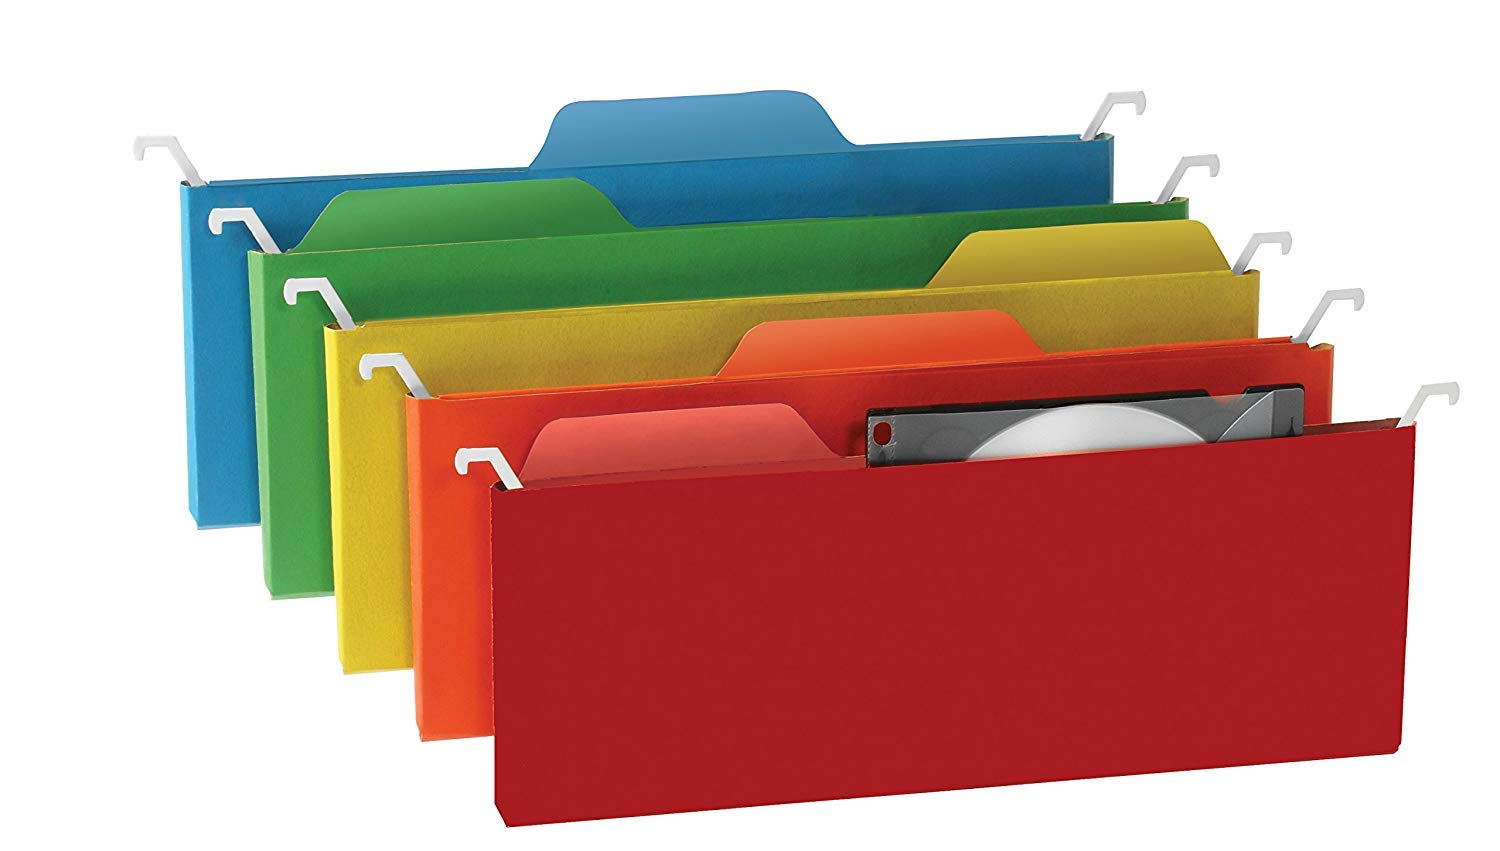 Find It Tab View Mini Hanging File Folders, Assorted Colors, 6 Pack (FT07184) (12 Pack)